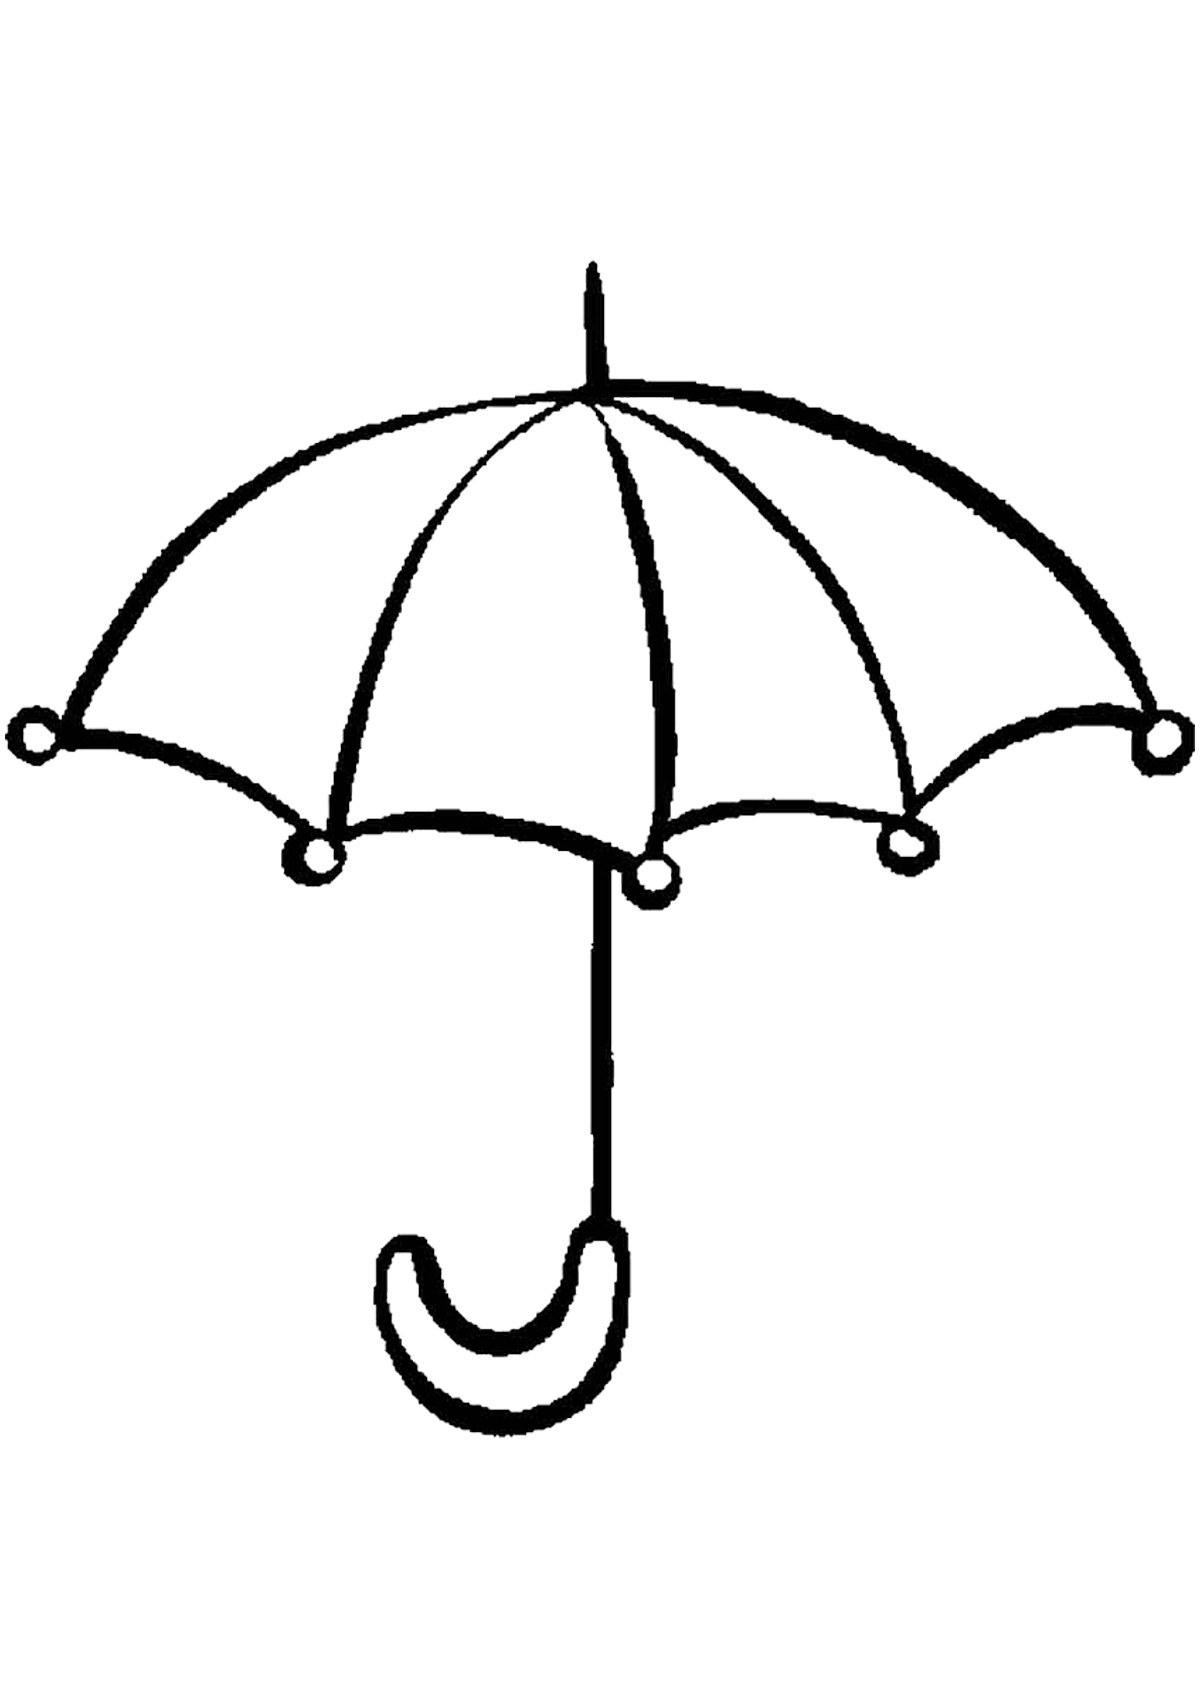 Umbrella Coloring Page Umbrella Coloring Page Fresh Pages With Umbrellas New Of 11